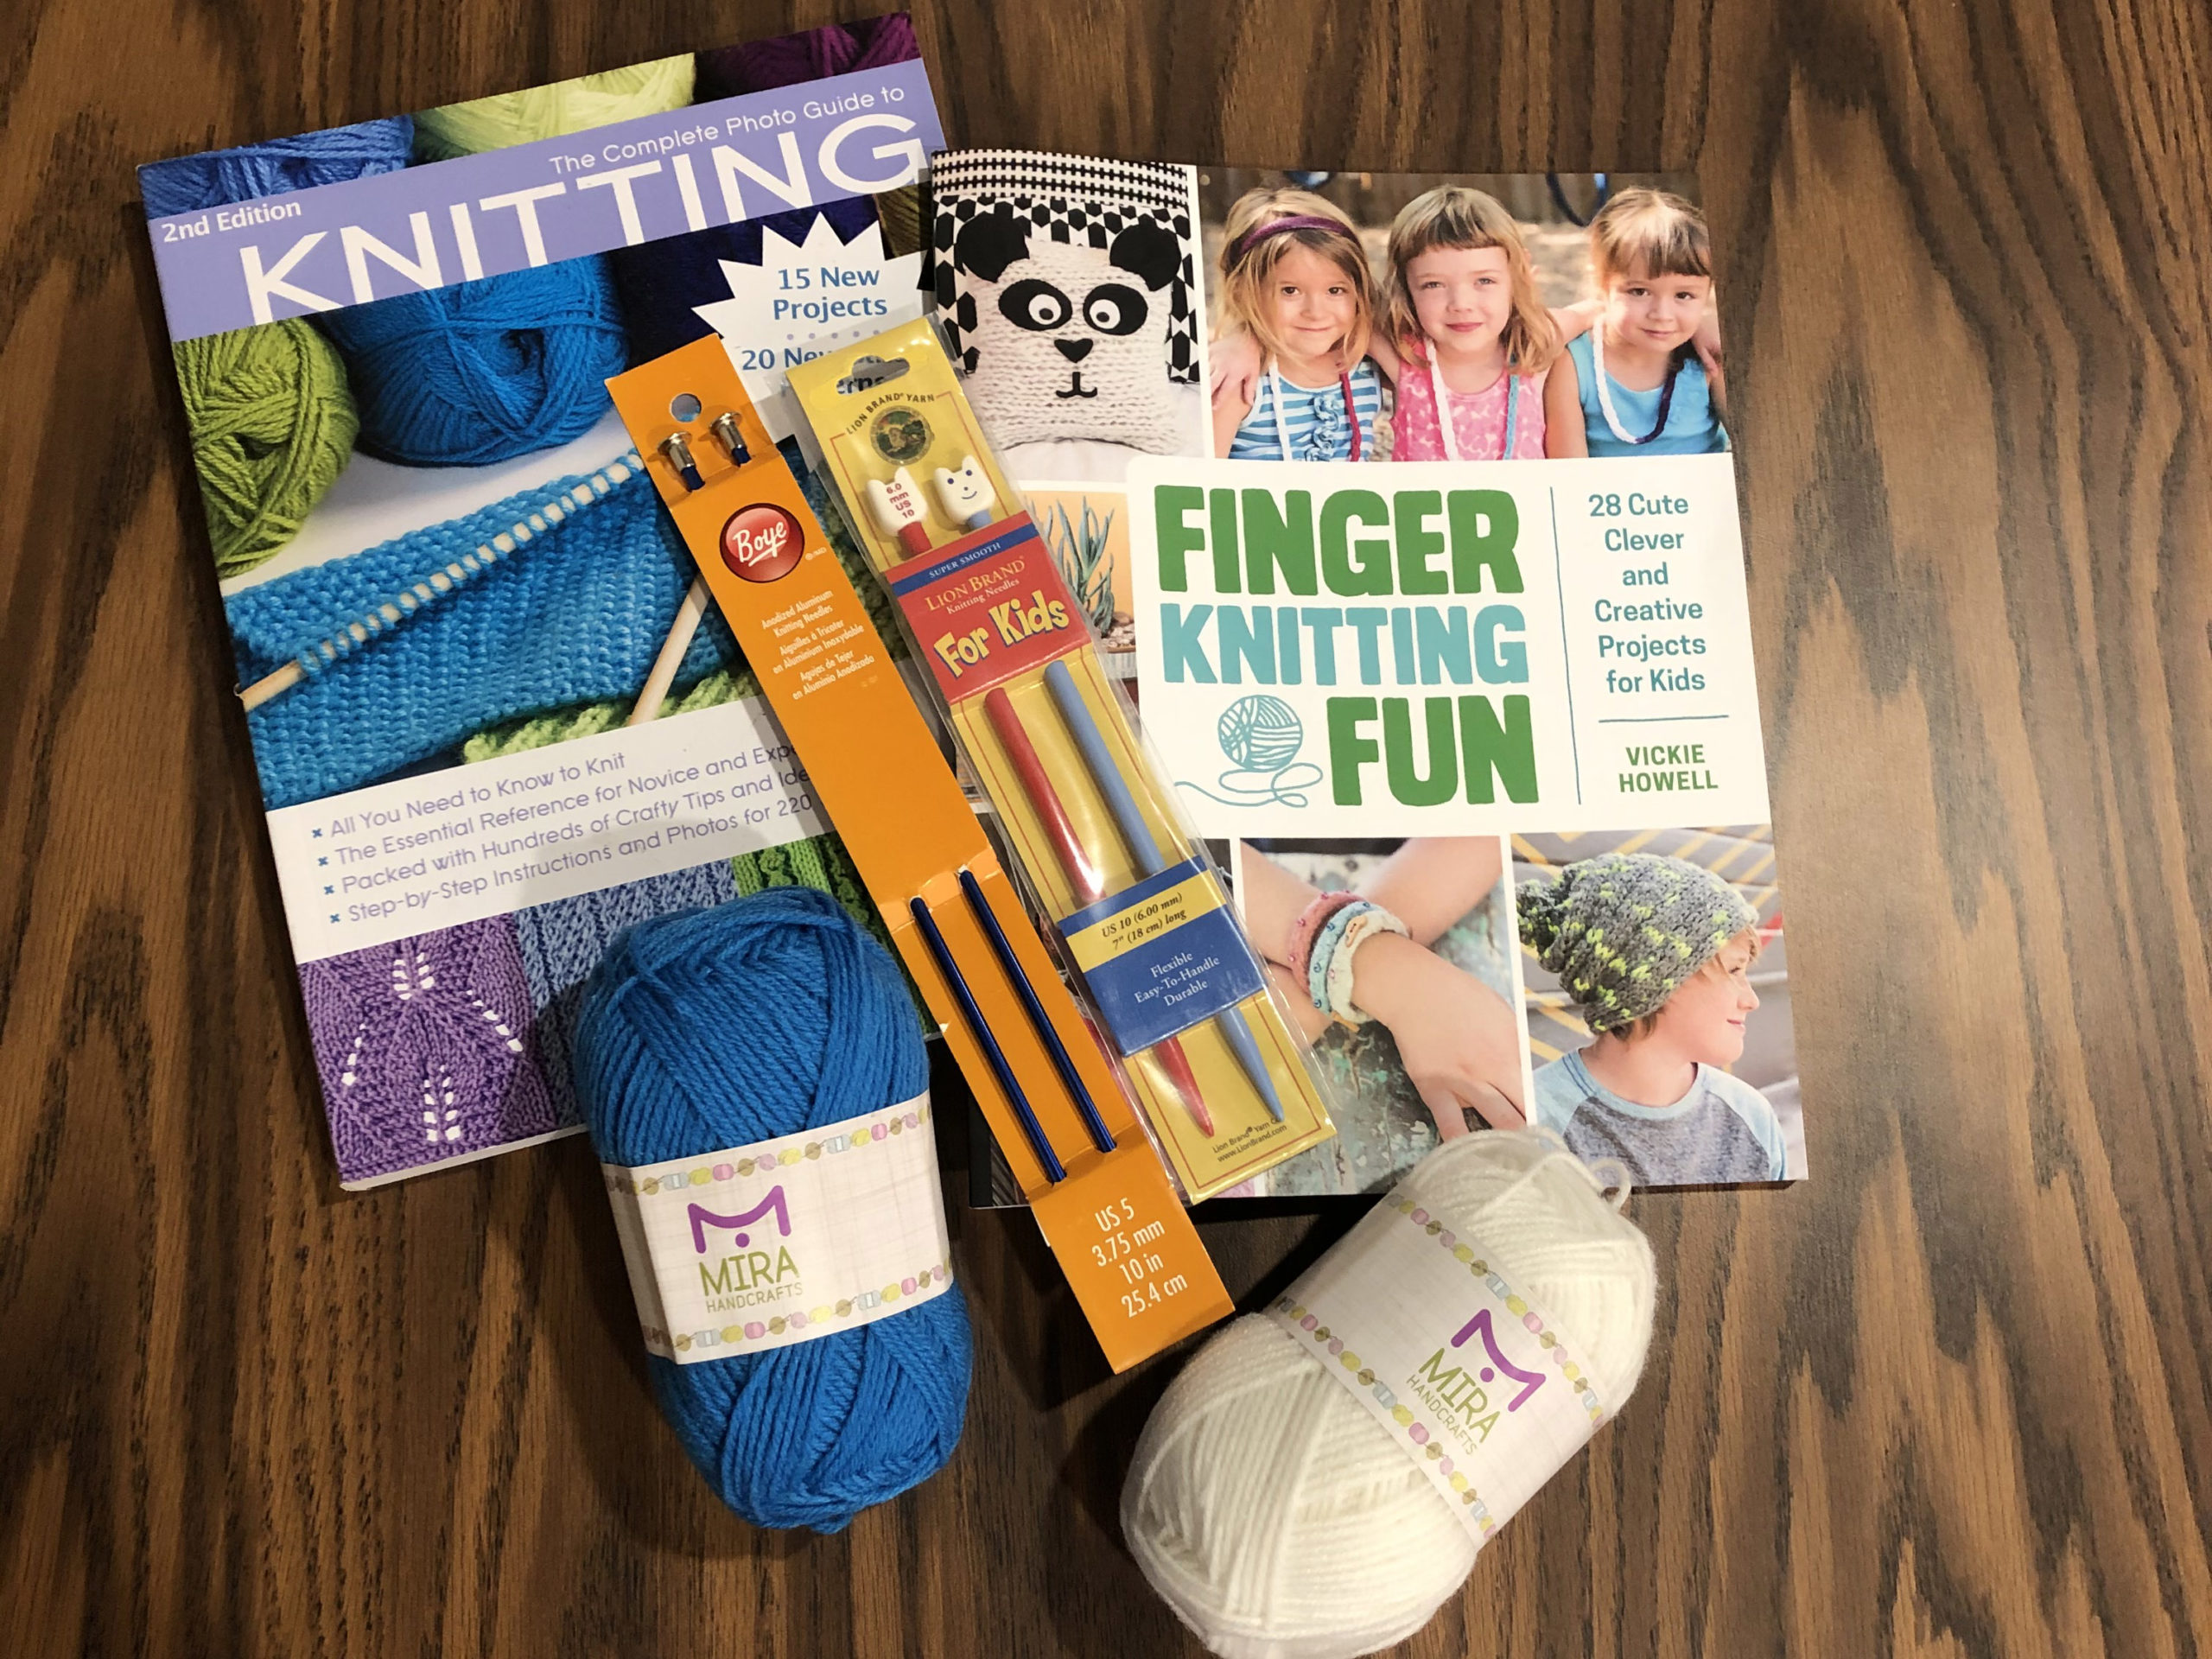 Knitting Discovery kit Items